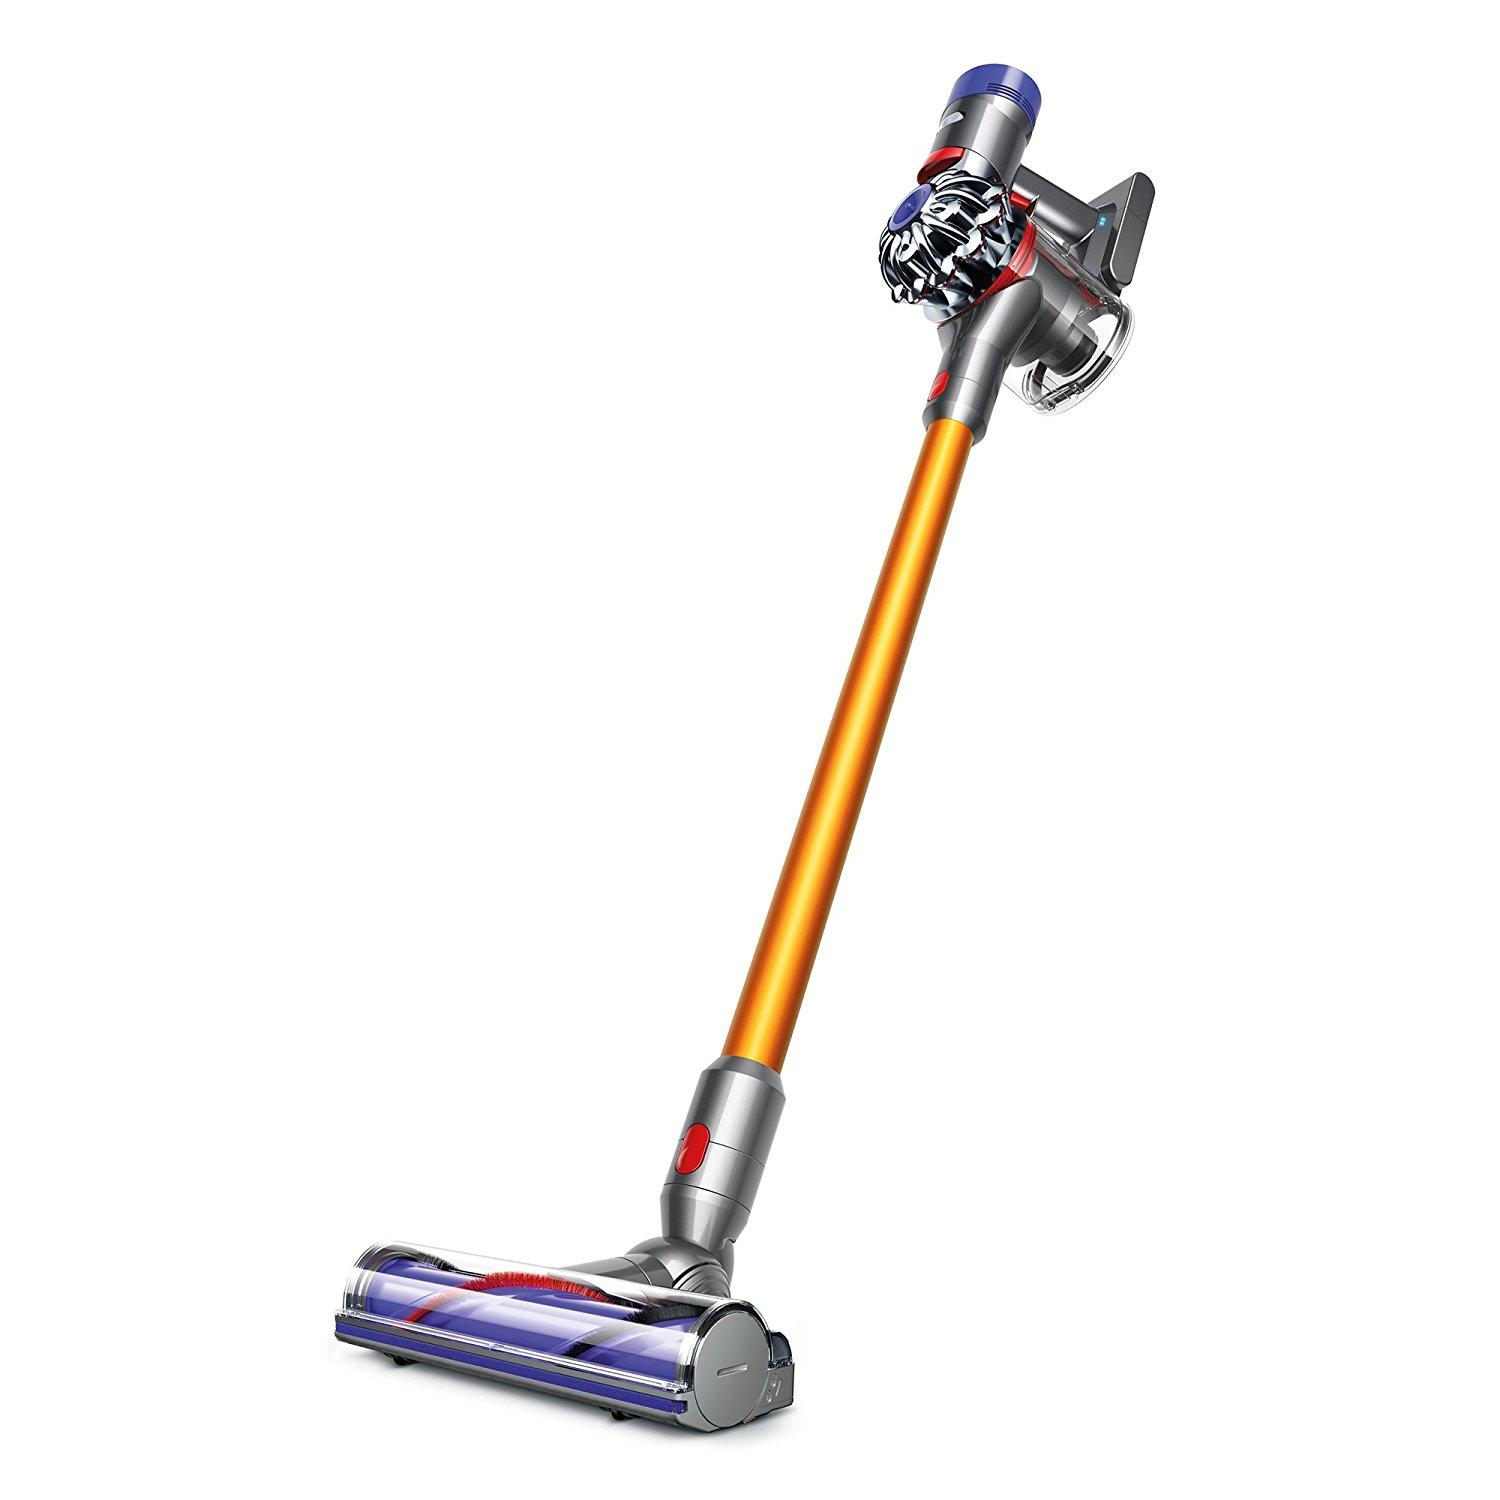 Dyson V8 Absolute Cord-Free Vacuum Cleaner